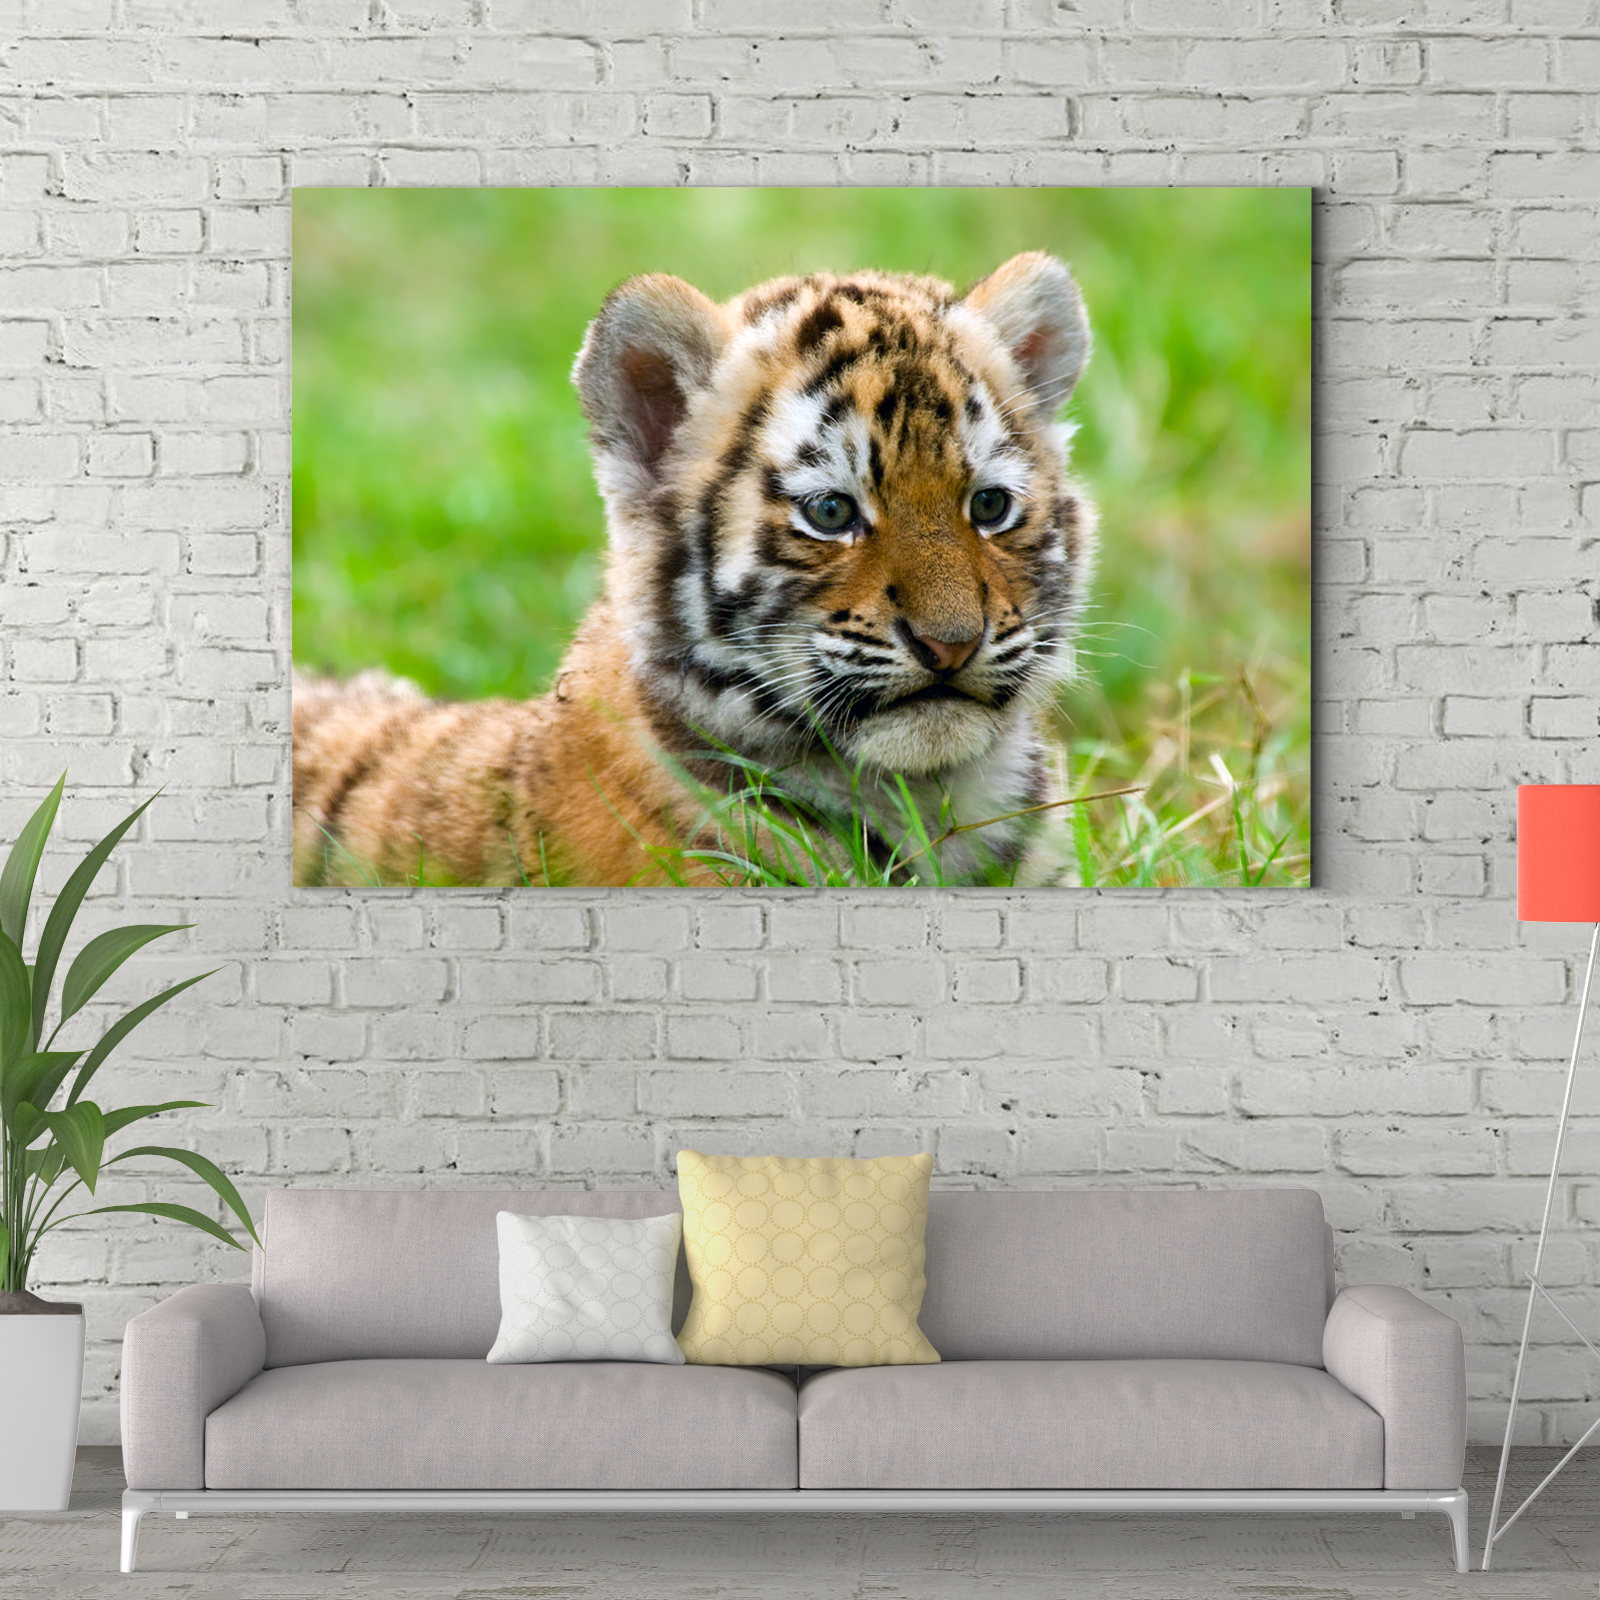 Tiger looking far away animal decoration painting 024